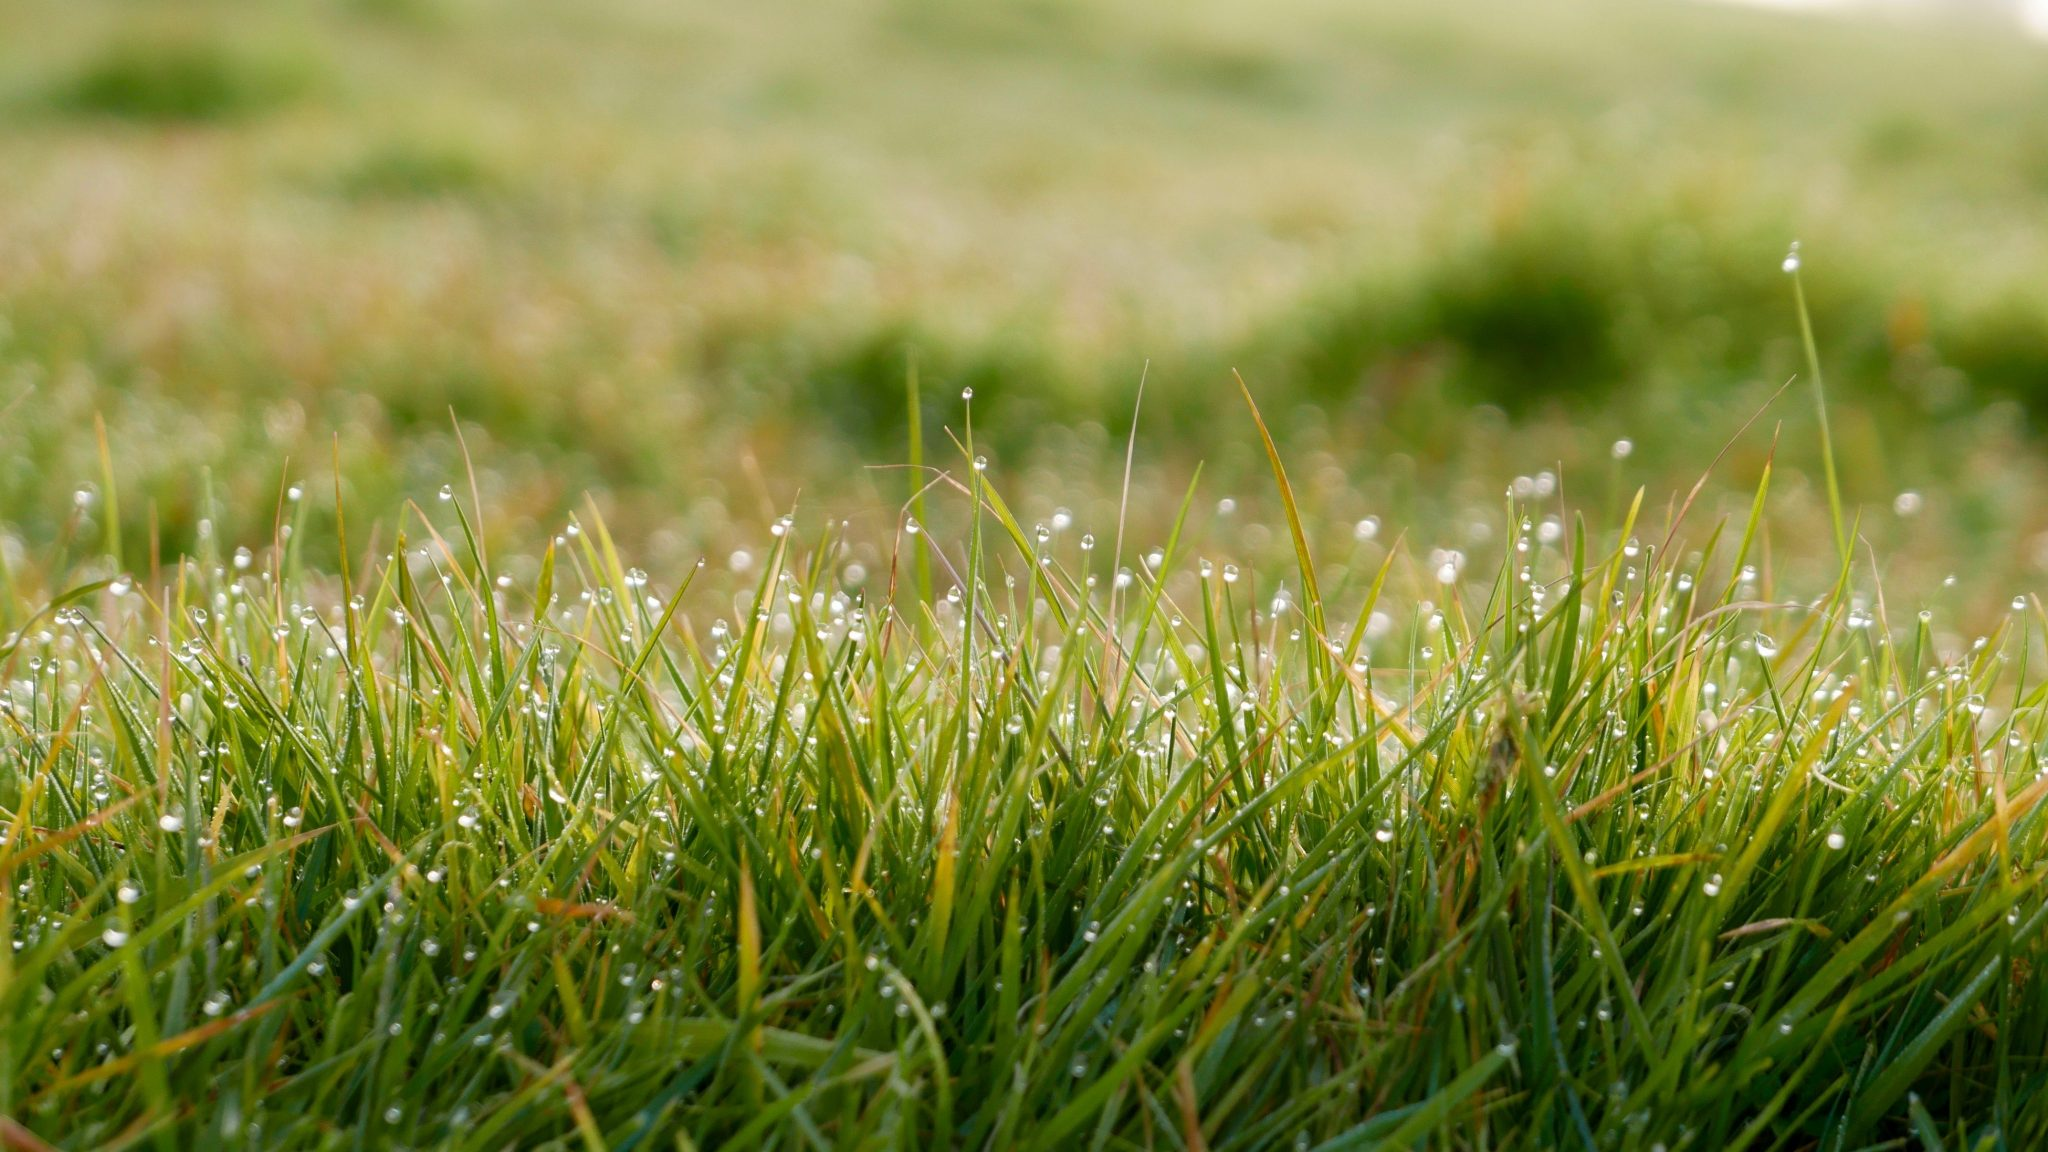 Check out these proper watering tips to make sure your grass and plants are healthy!